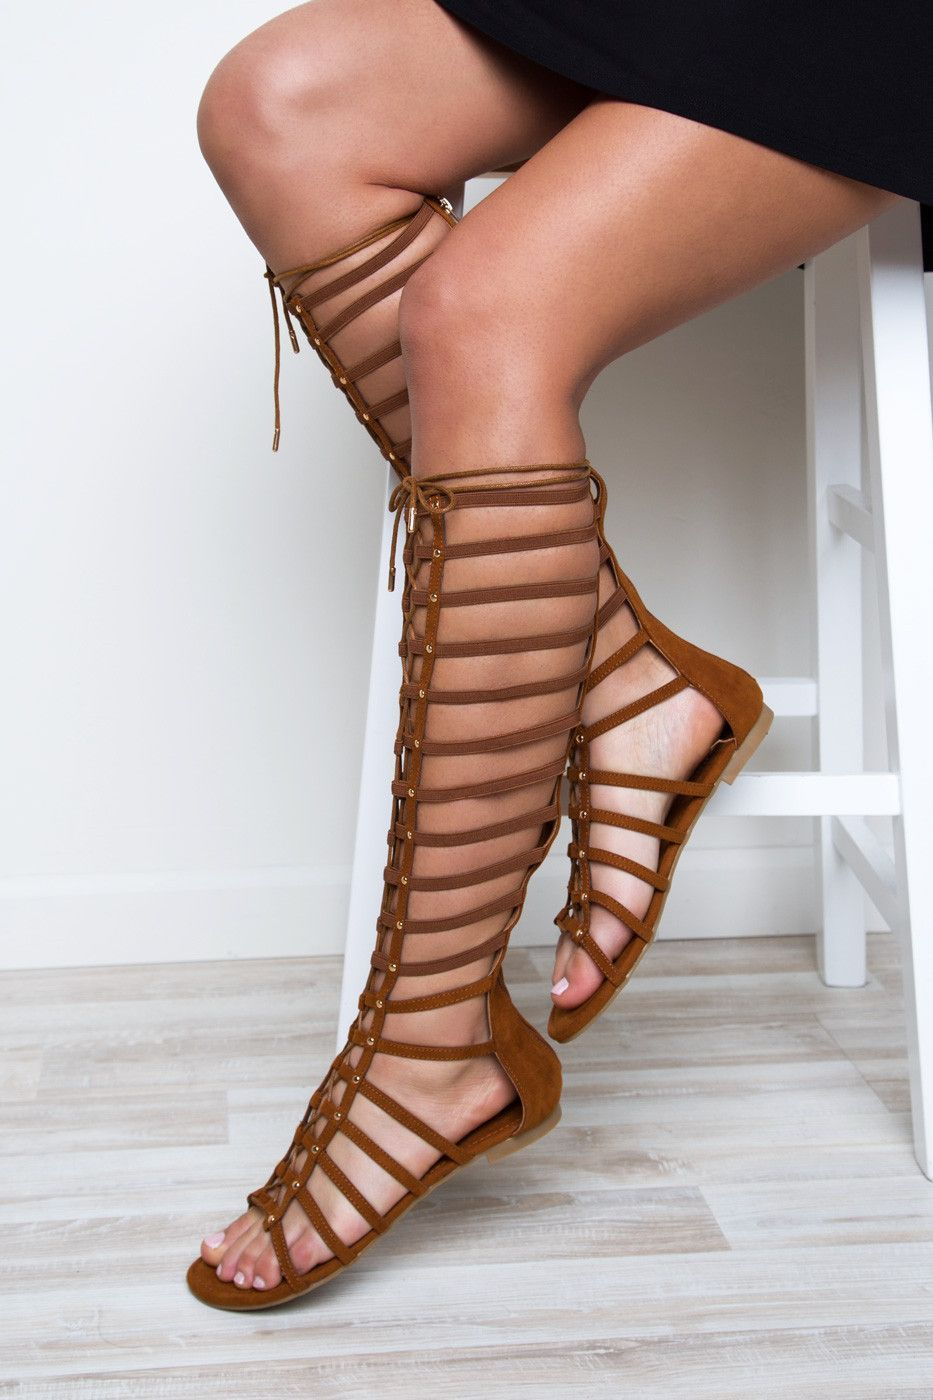 a2d332d90 Embody a Greek goddess in these Hera Gladiator Sandals in Chestnut!  Featuring a faux leather material with adjustable